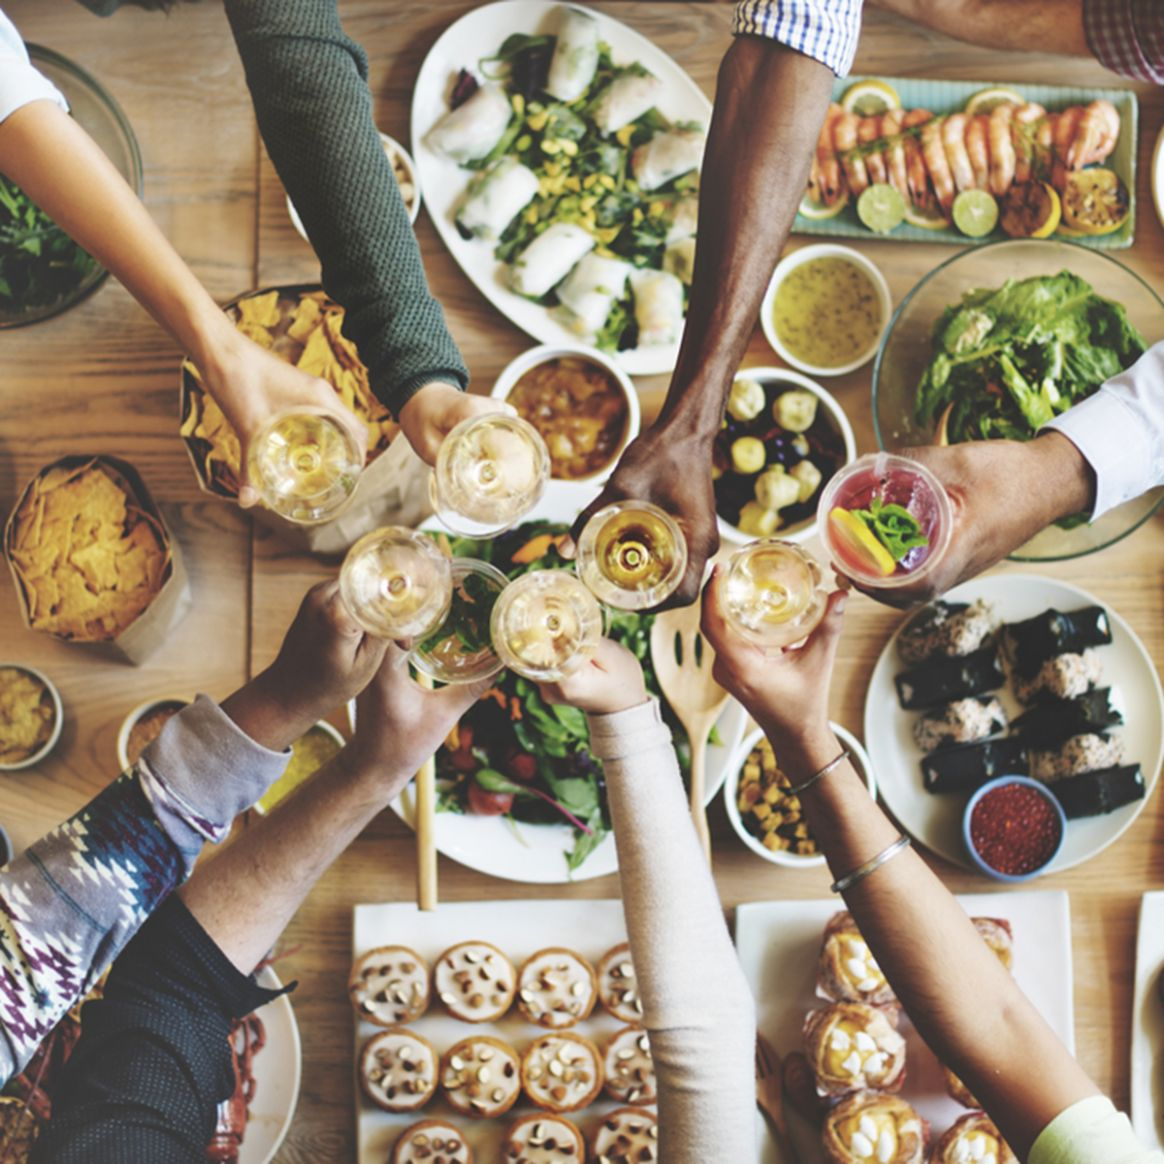 10 Dinner Club Recipes to Share With Friends | Taste of Home - Recipes Dinner With Friends